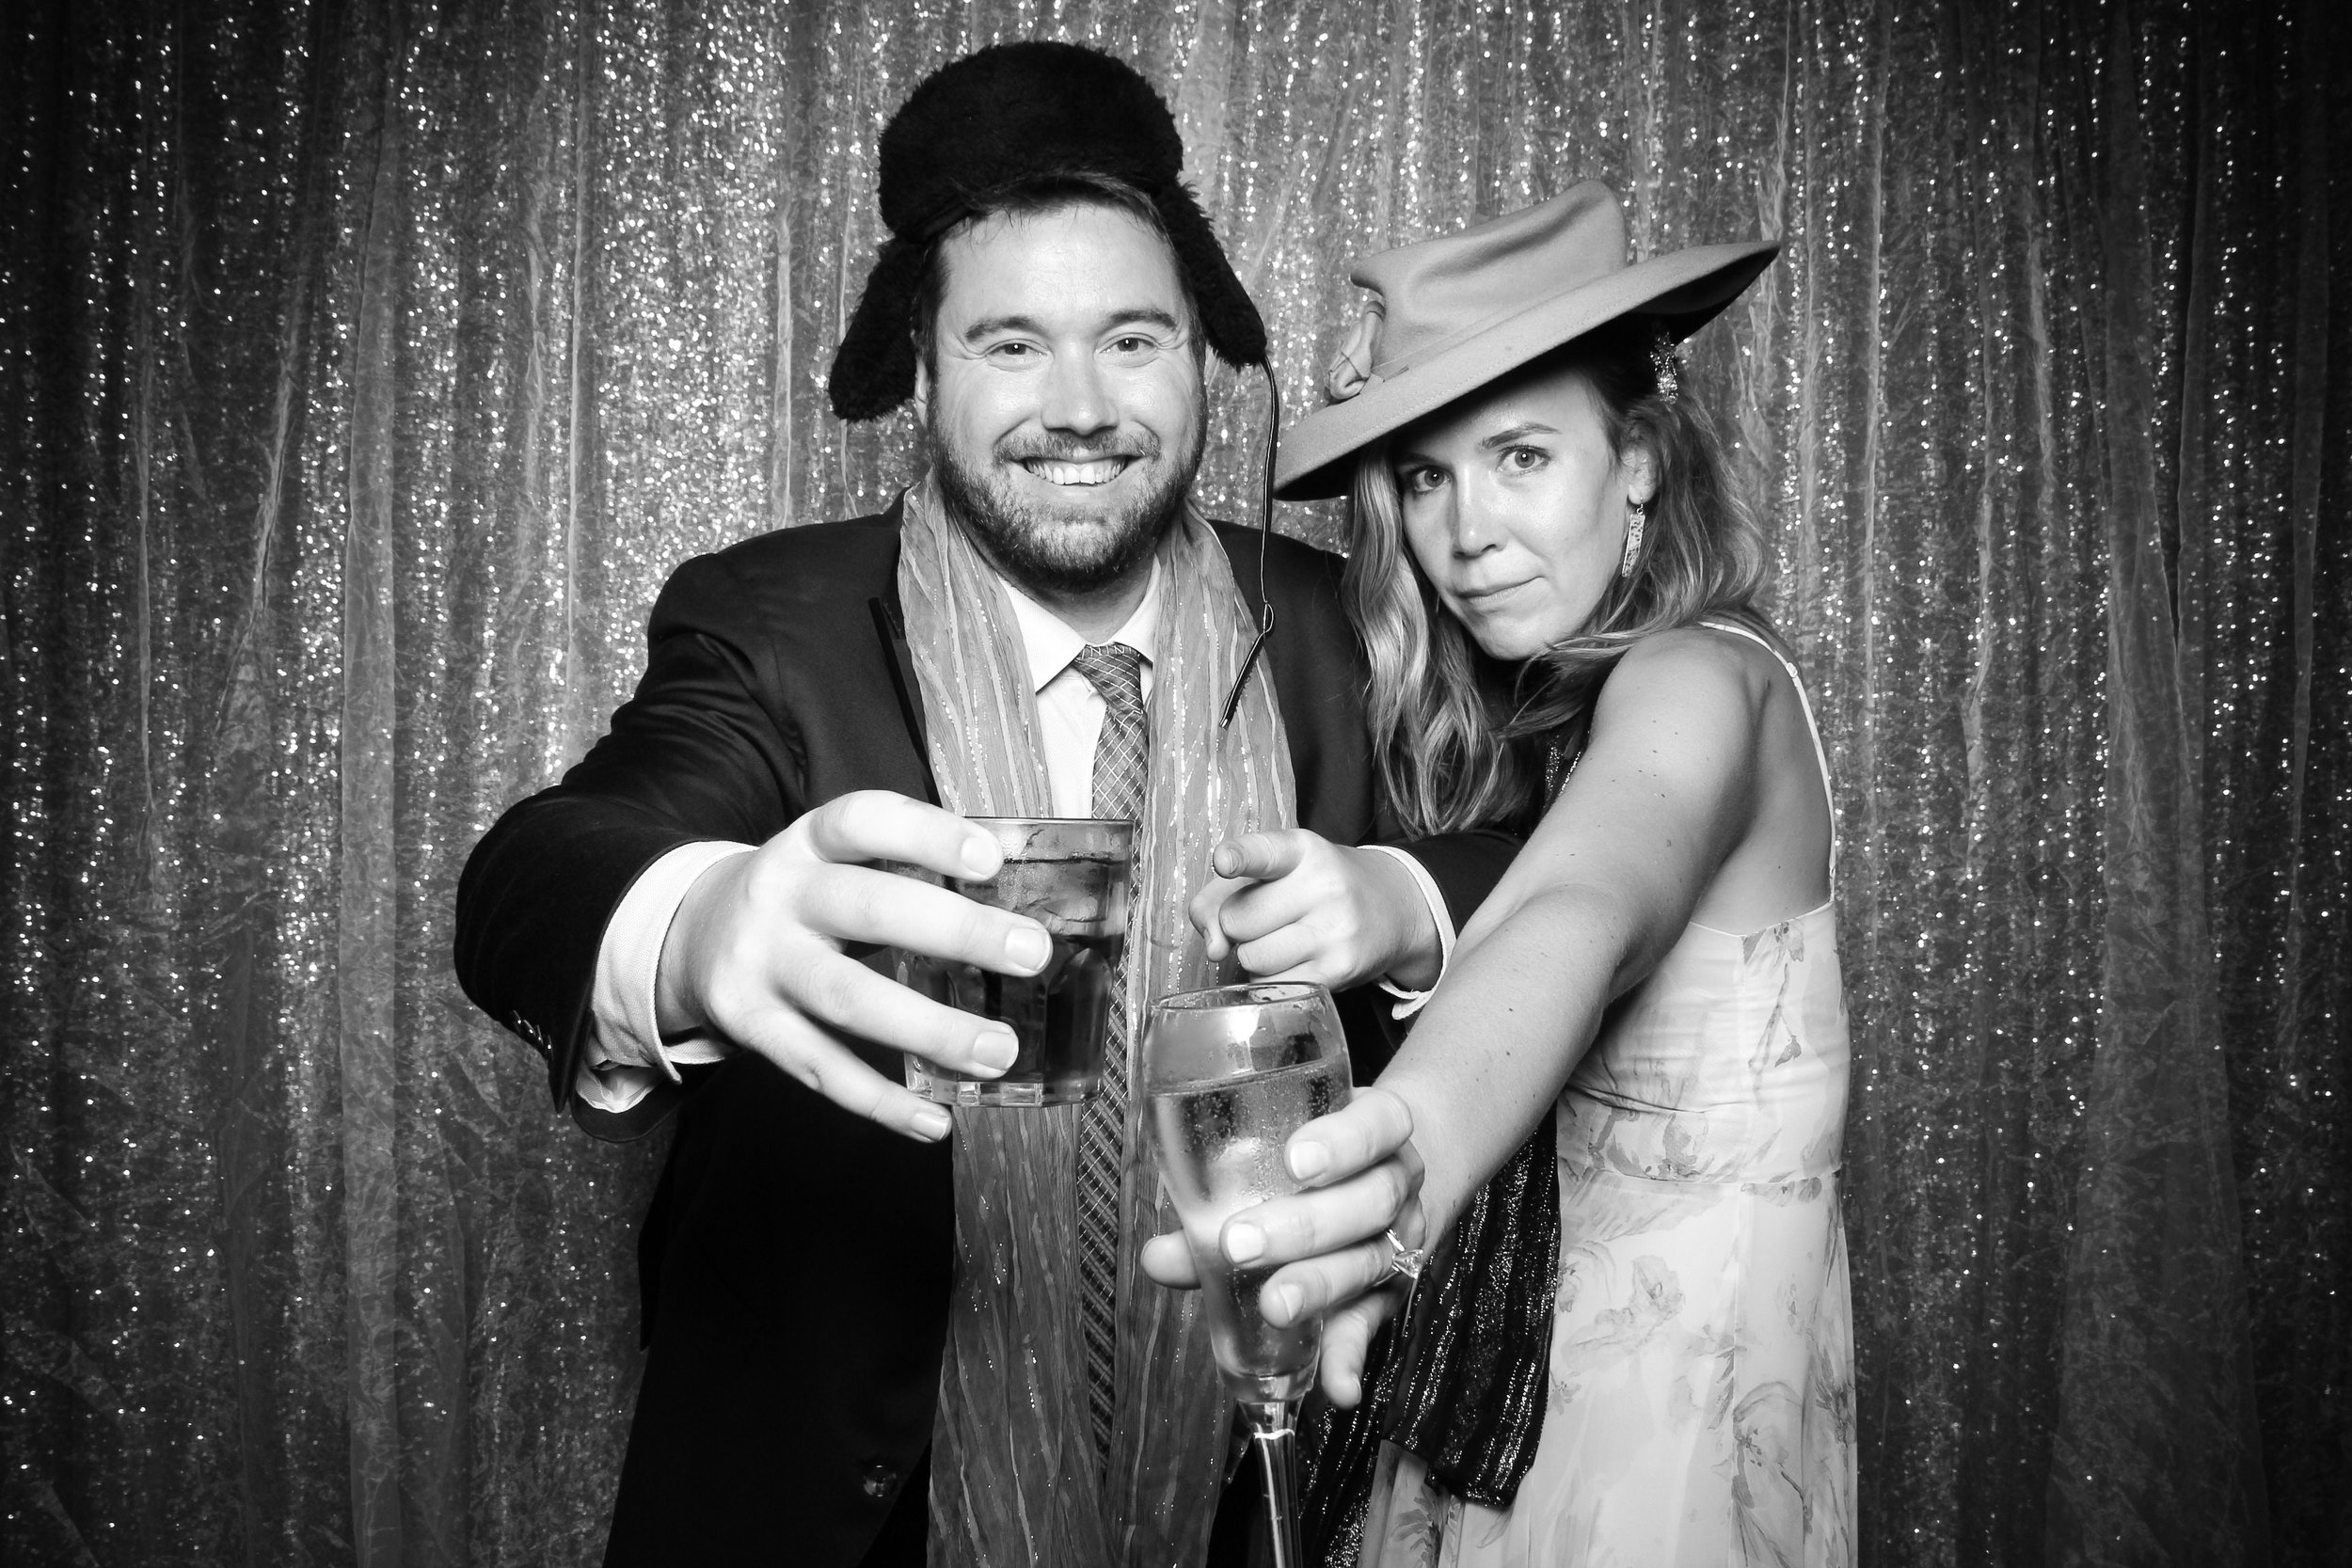 Chicago_Vintage_Wedding_Photobooth_Medinah_Country_Club_22.jpg